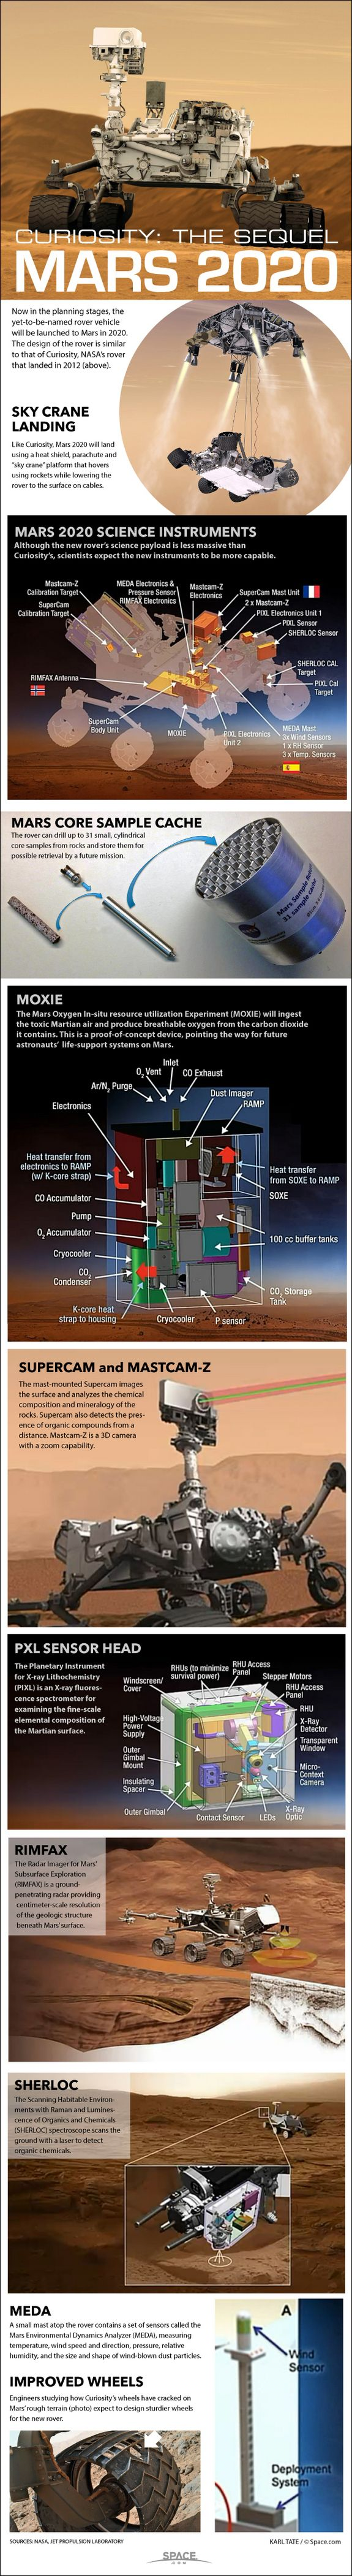 How NASA's Mars 2020 Rover Will Work (Infographic) By Karl Tate, Infographics Artist | July 31, 2014